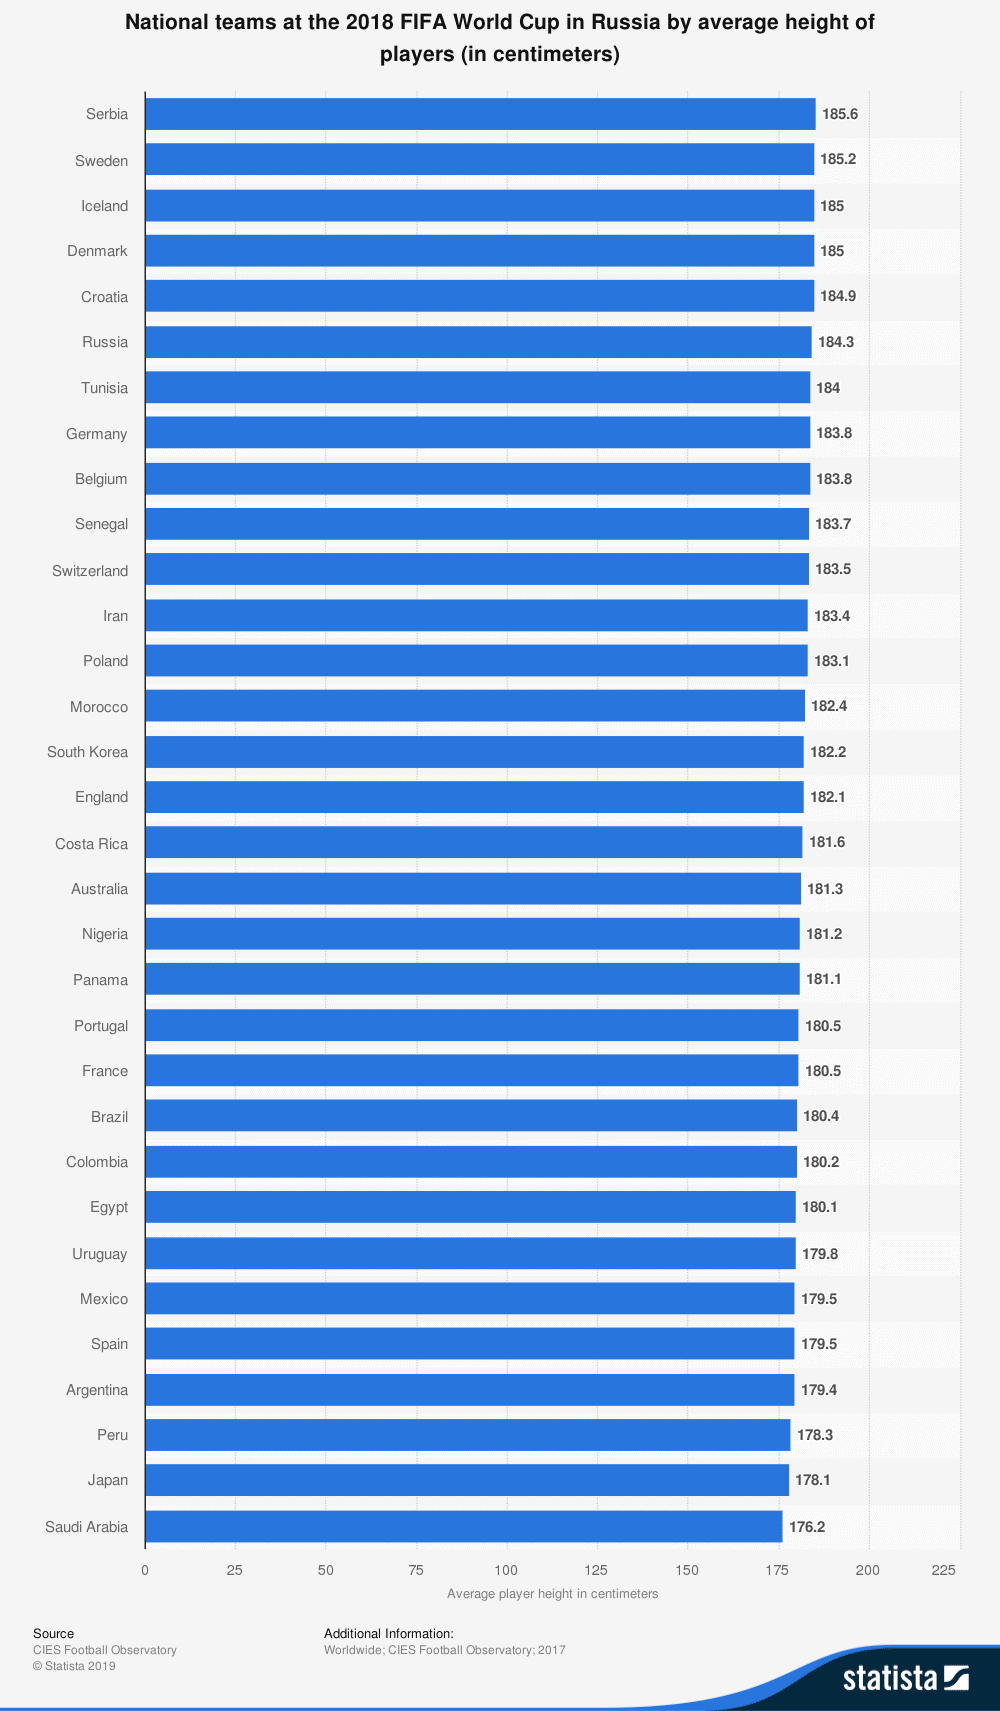 The height of soccer players at the 2018 World Cup